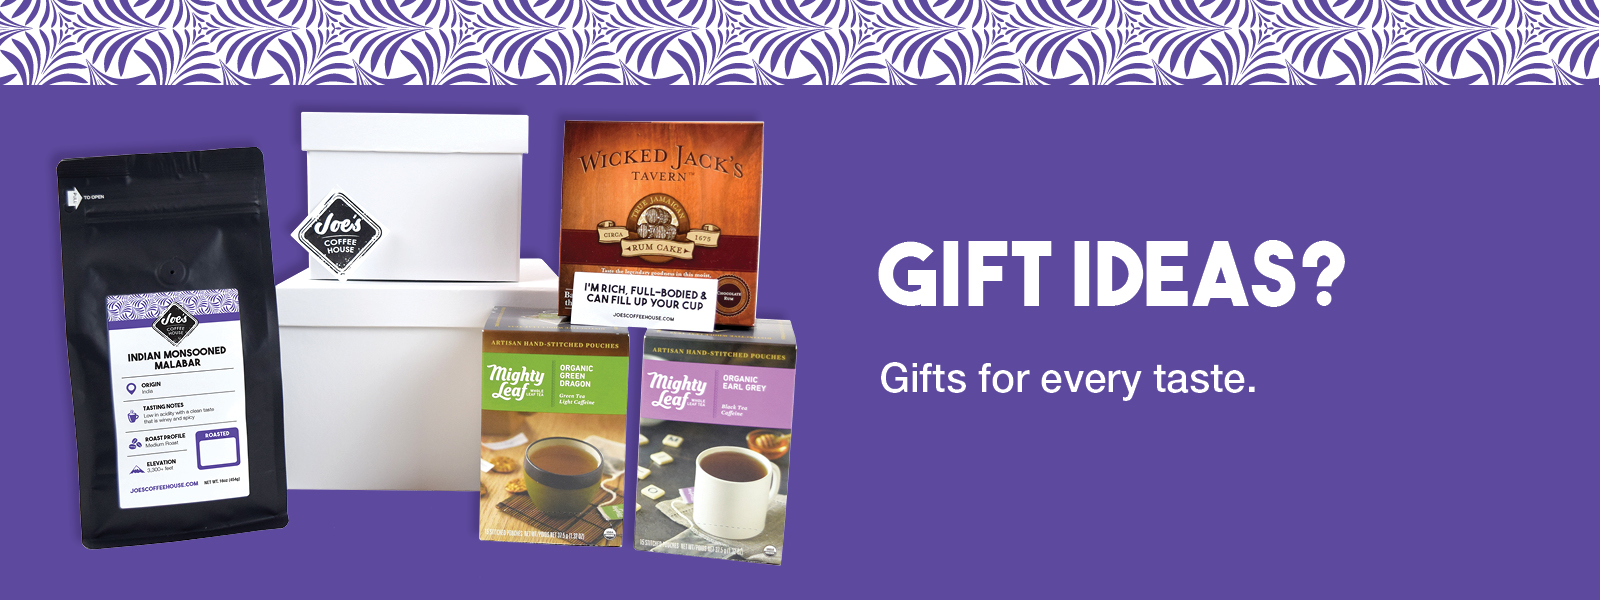 We have gifts for every taste.